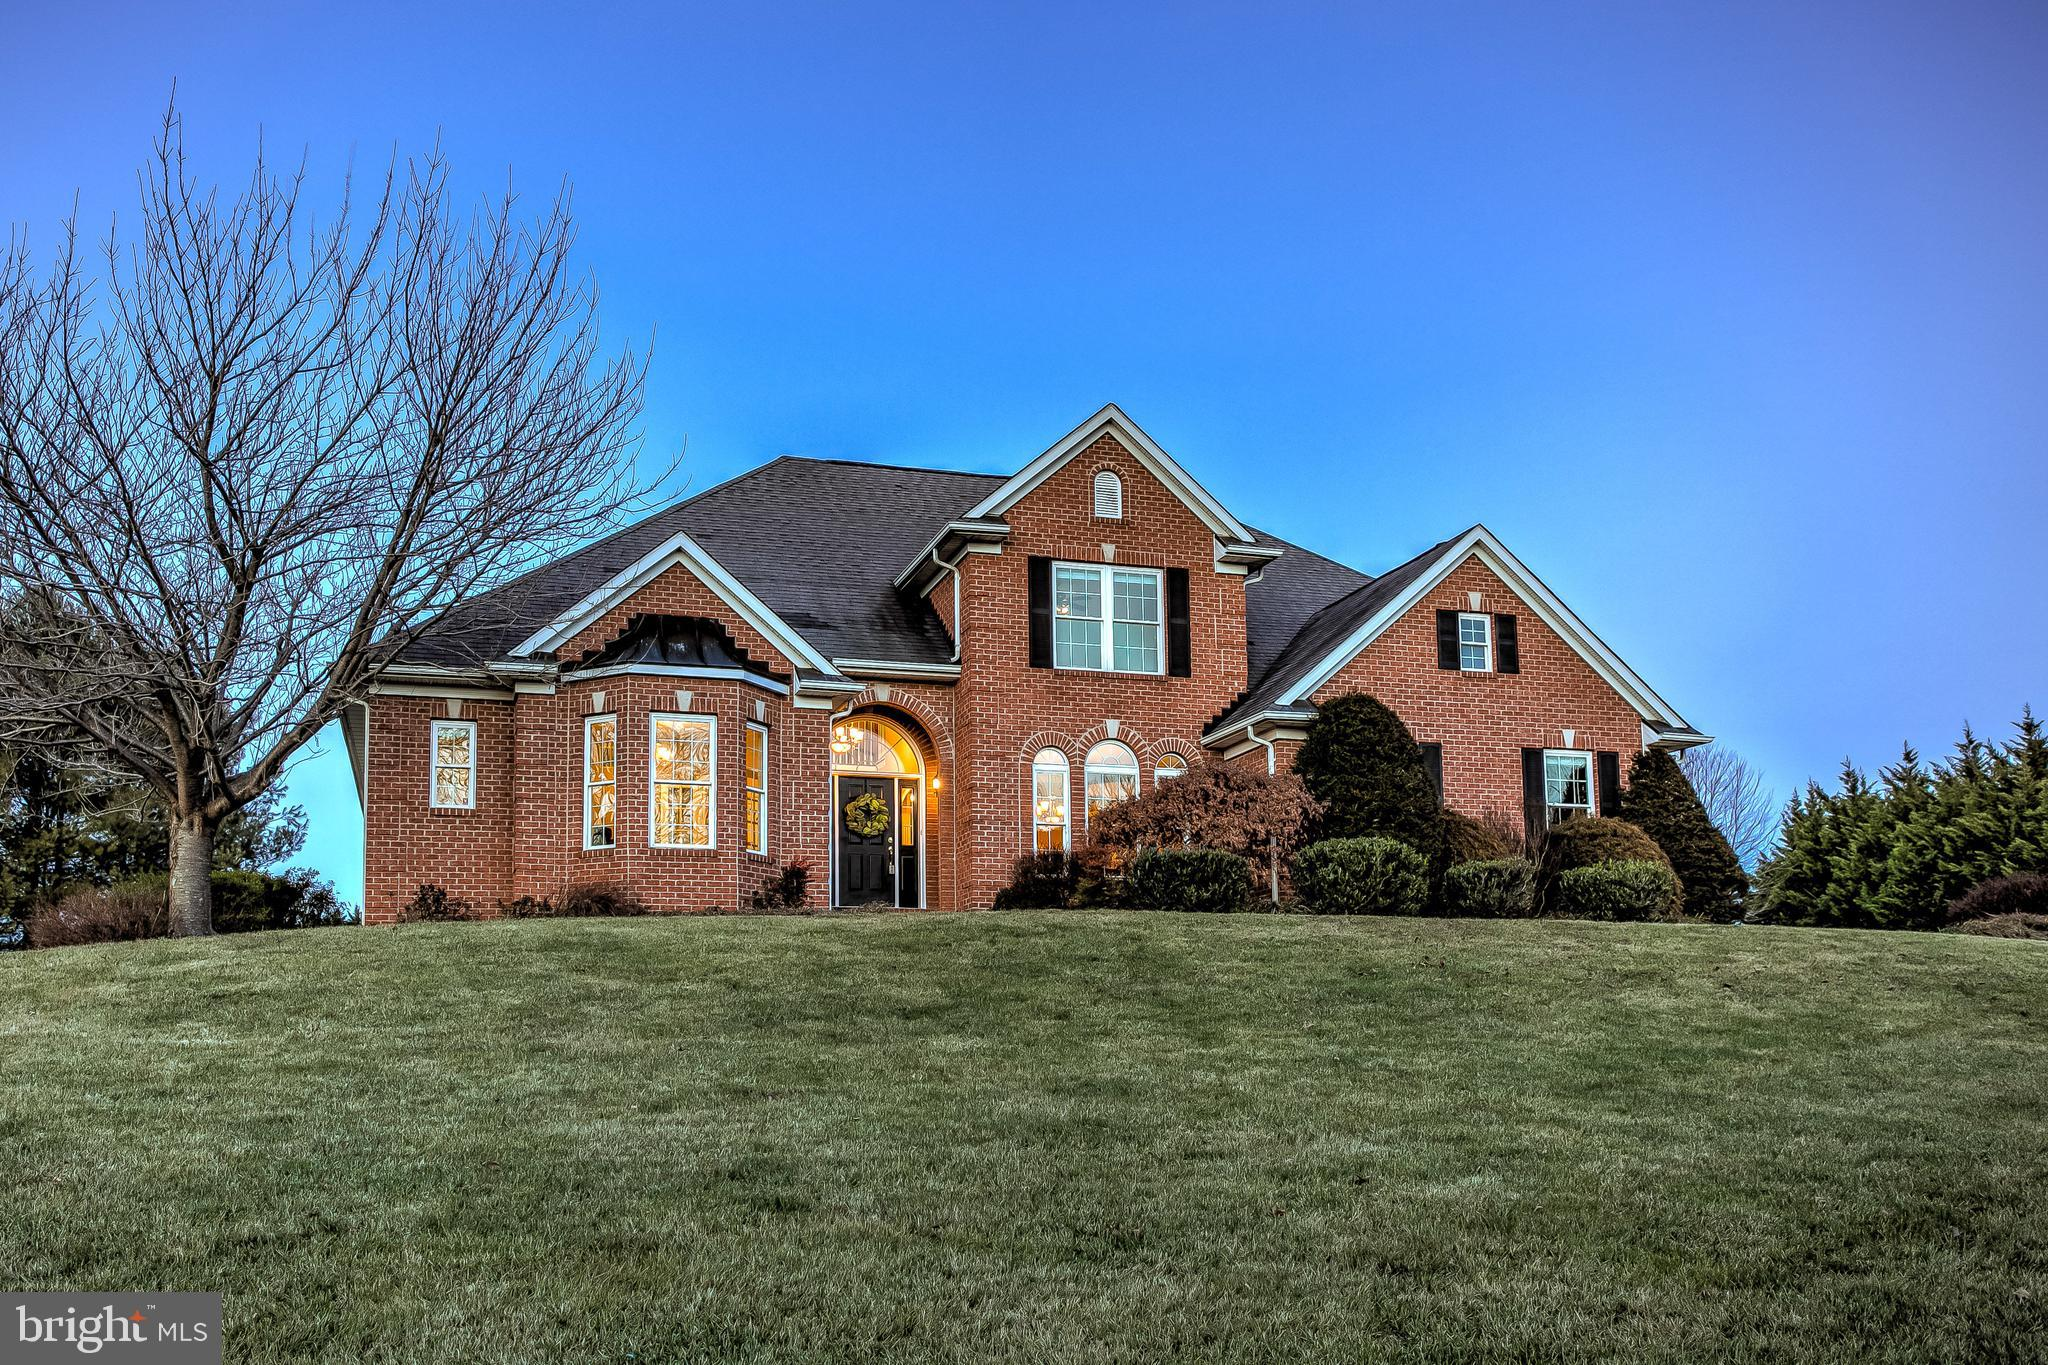 5833 PINE BROOK FARM ROAD, SYKESVILLE, MD 21784